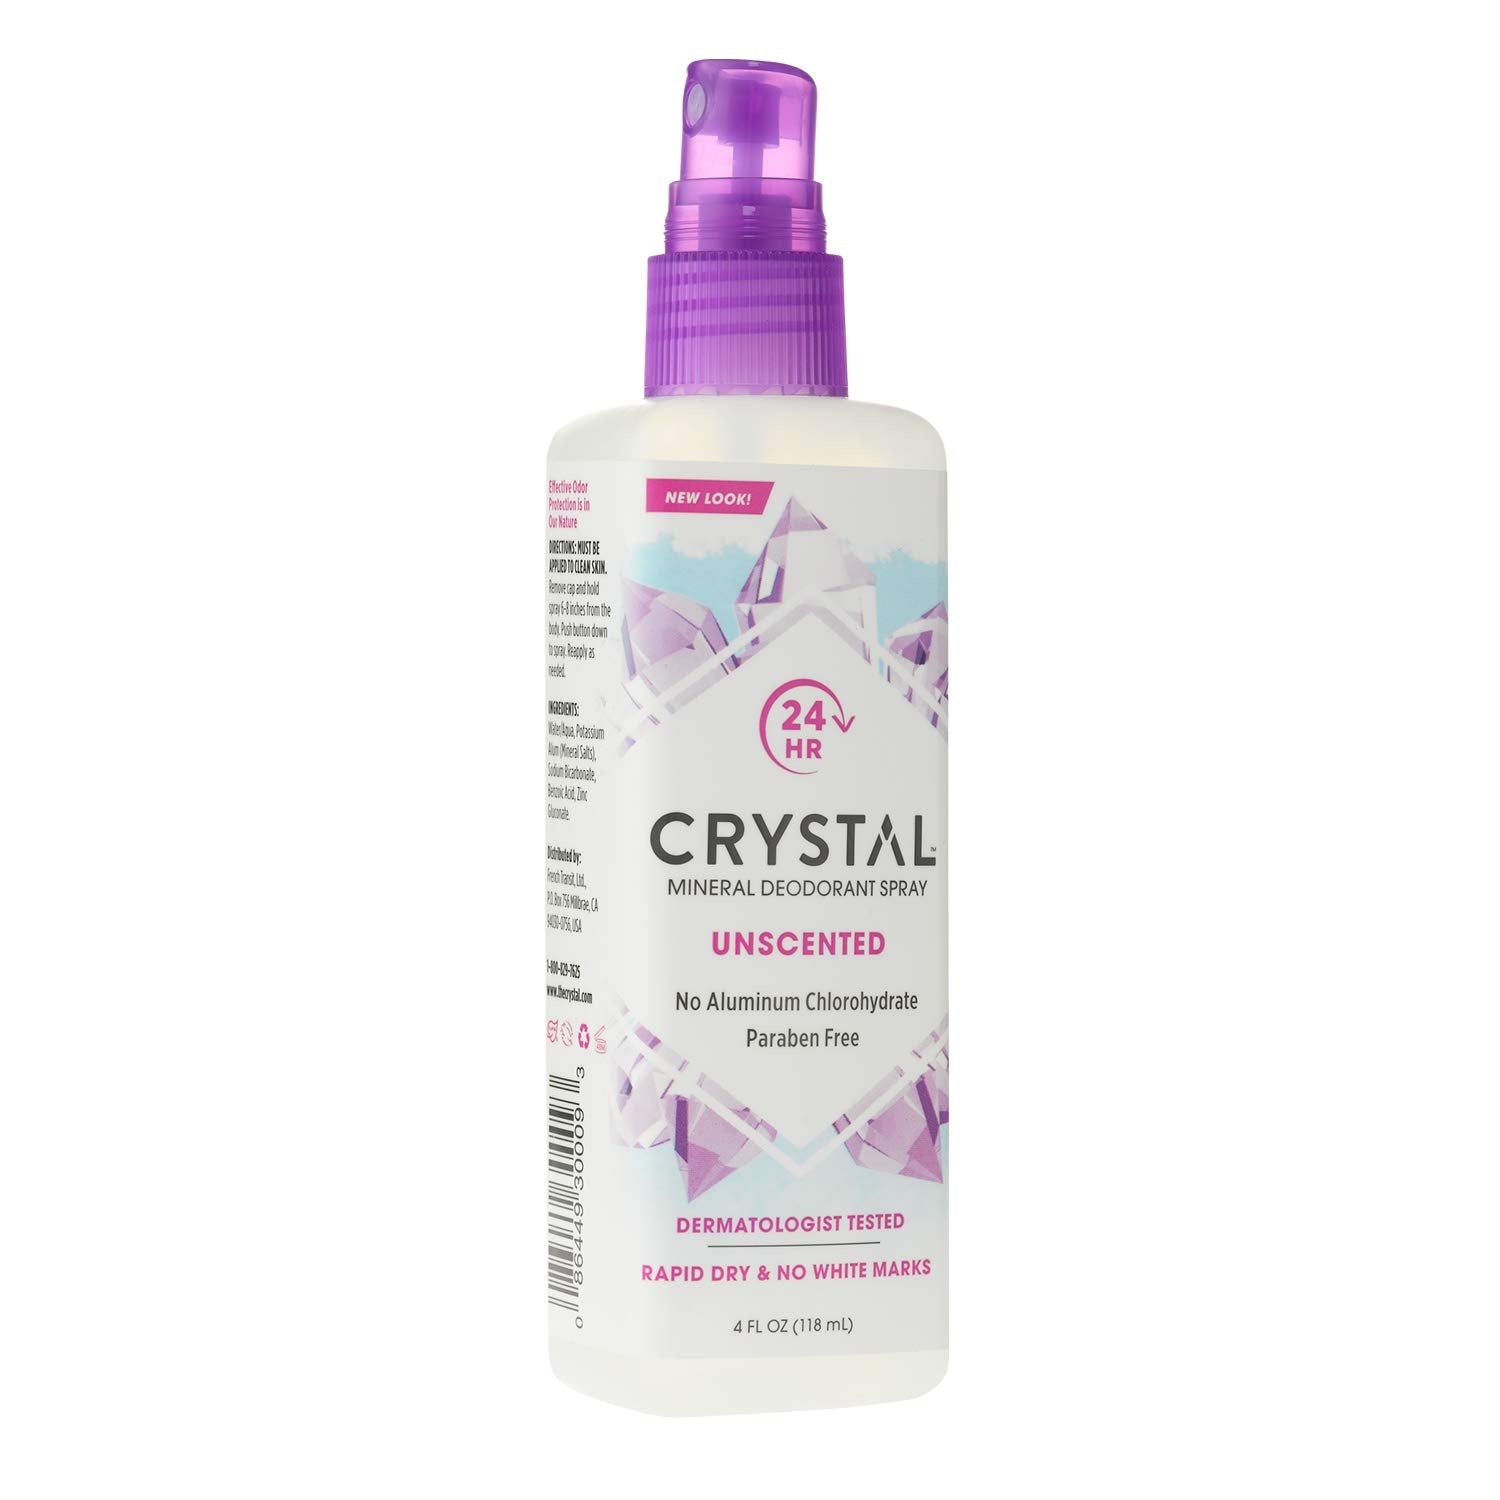 Crystal 24 hr Unscented Mineral Deodorant Spray 118mL